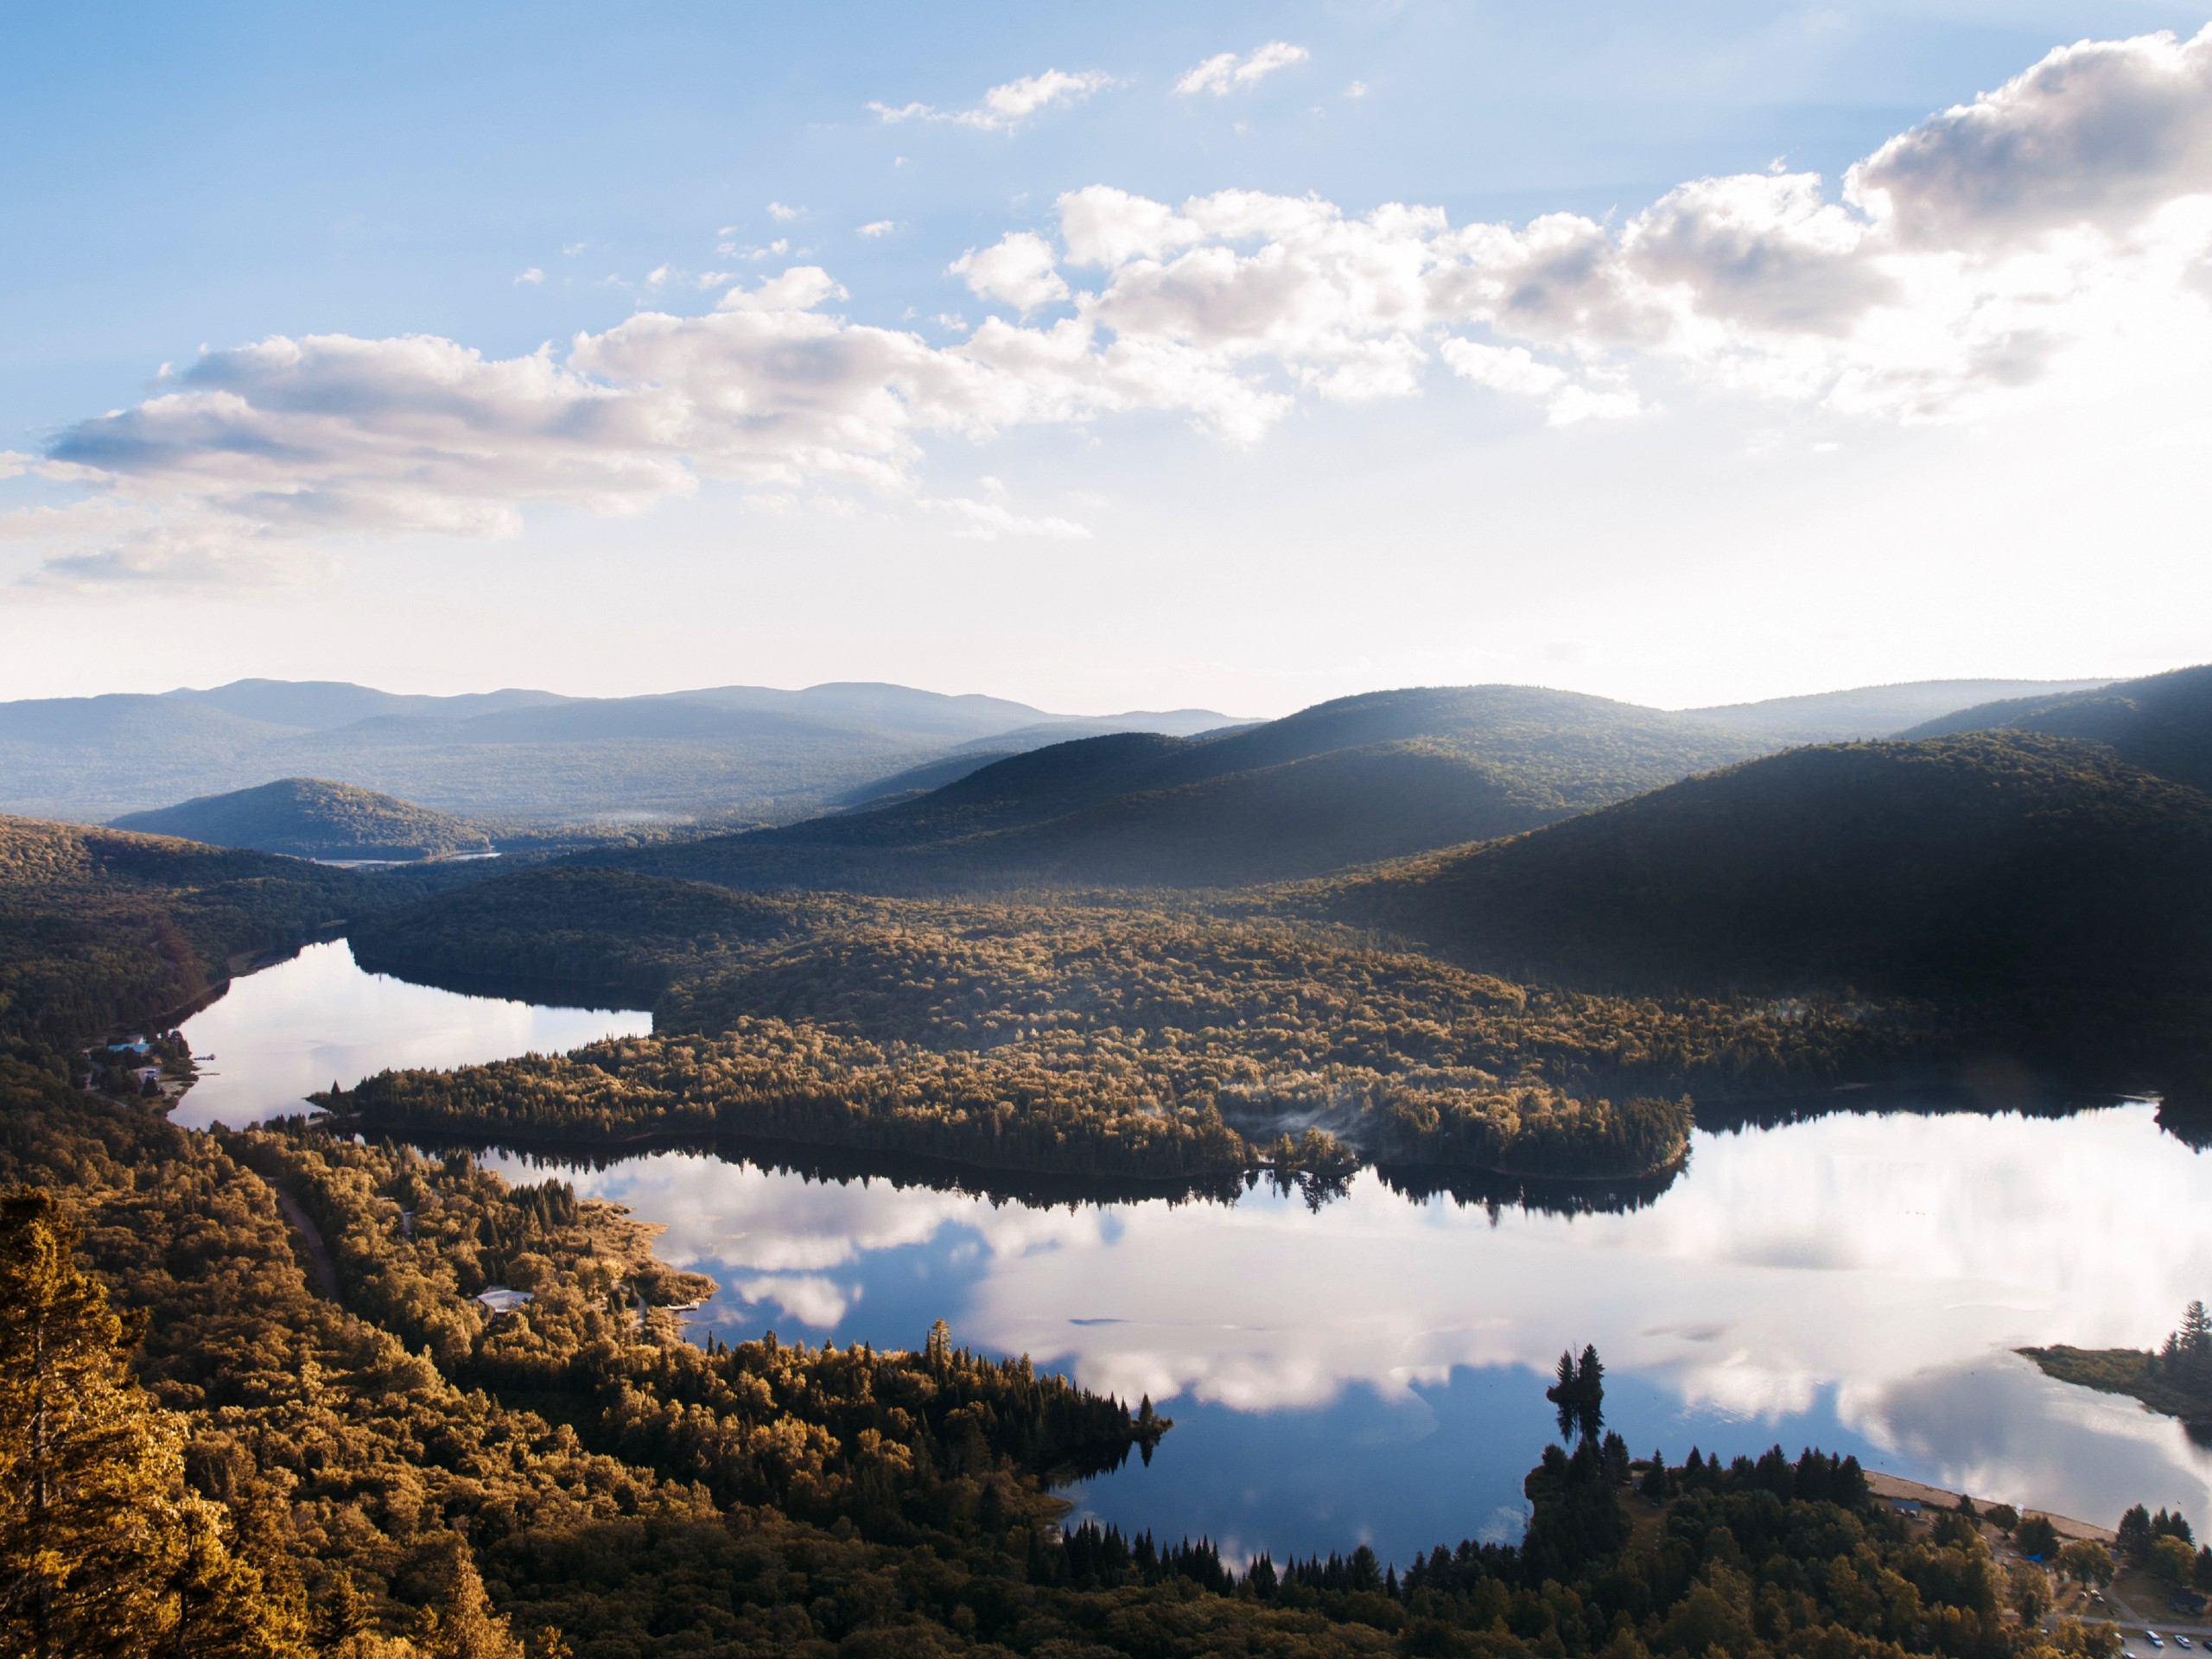 Reflections in the lake at Mont Tremblant (Quebec)